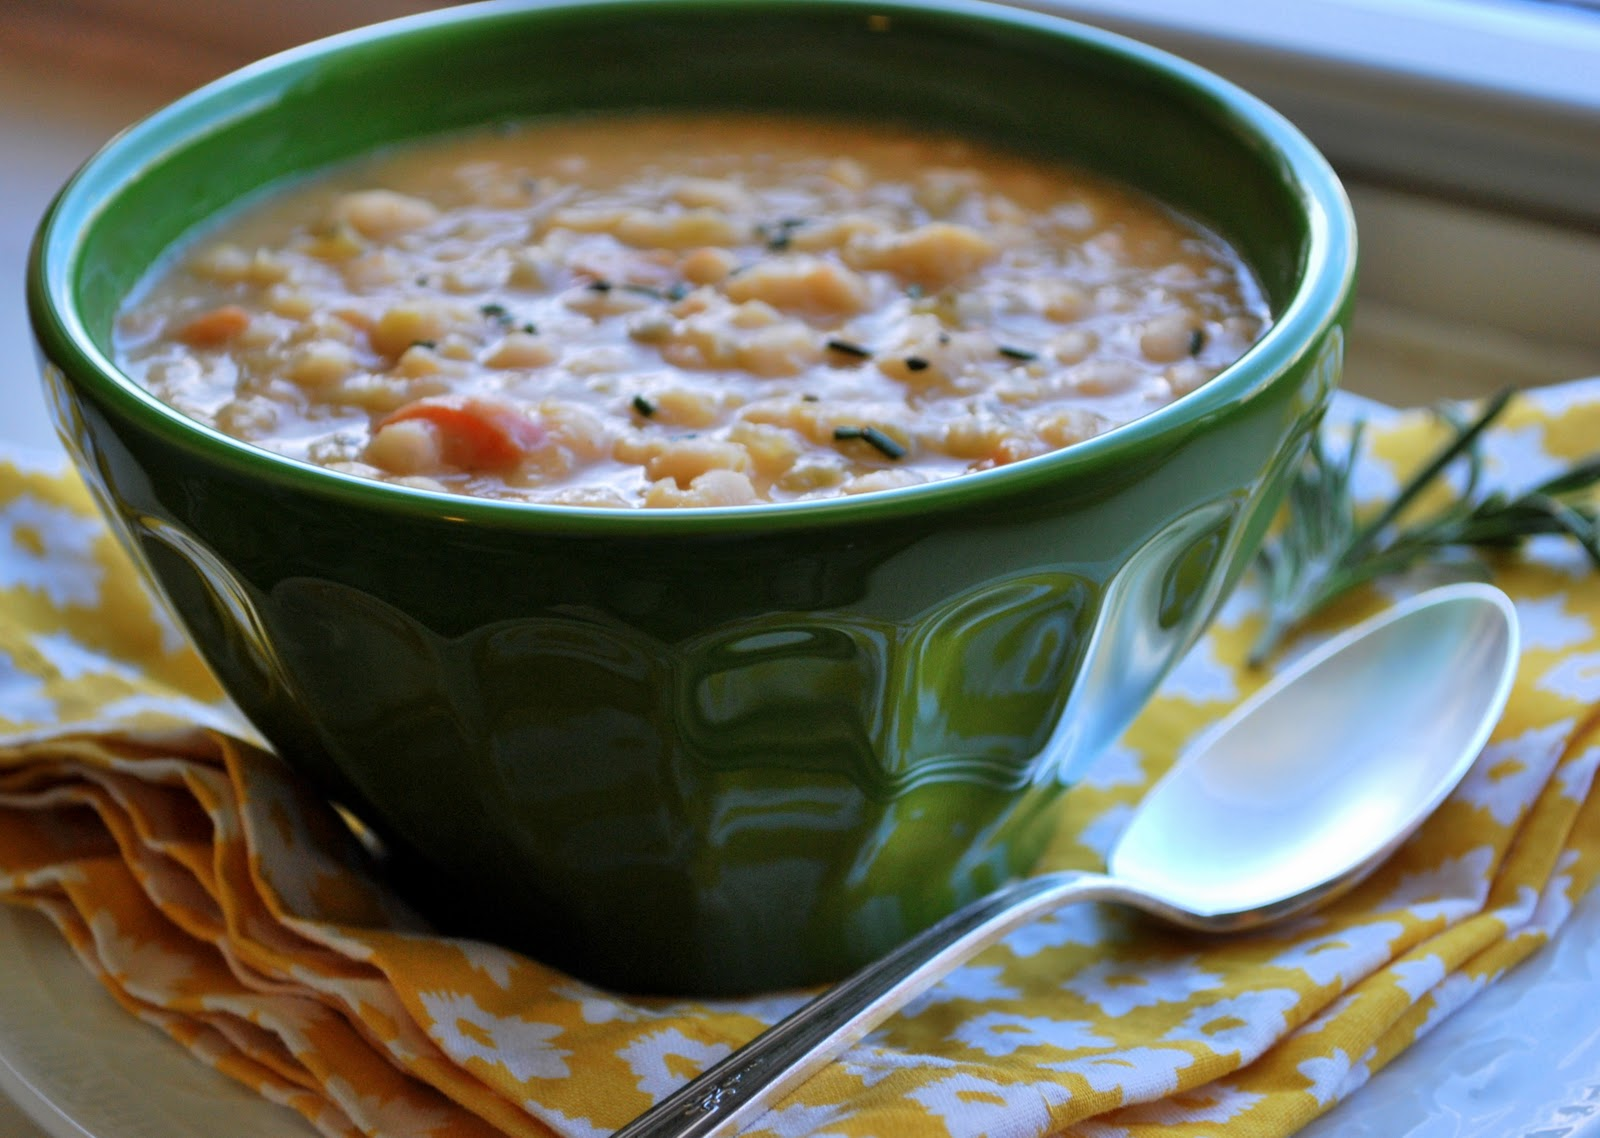 Belle of the Kitchen: Better Together eating Tuscan White Bean Soup